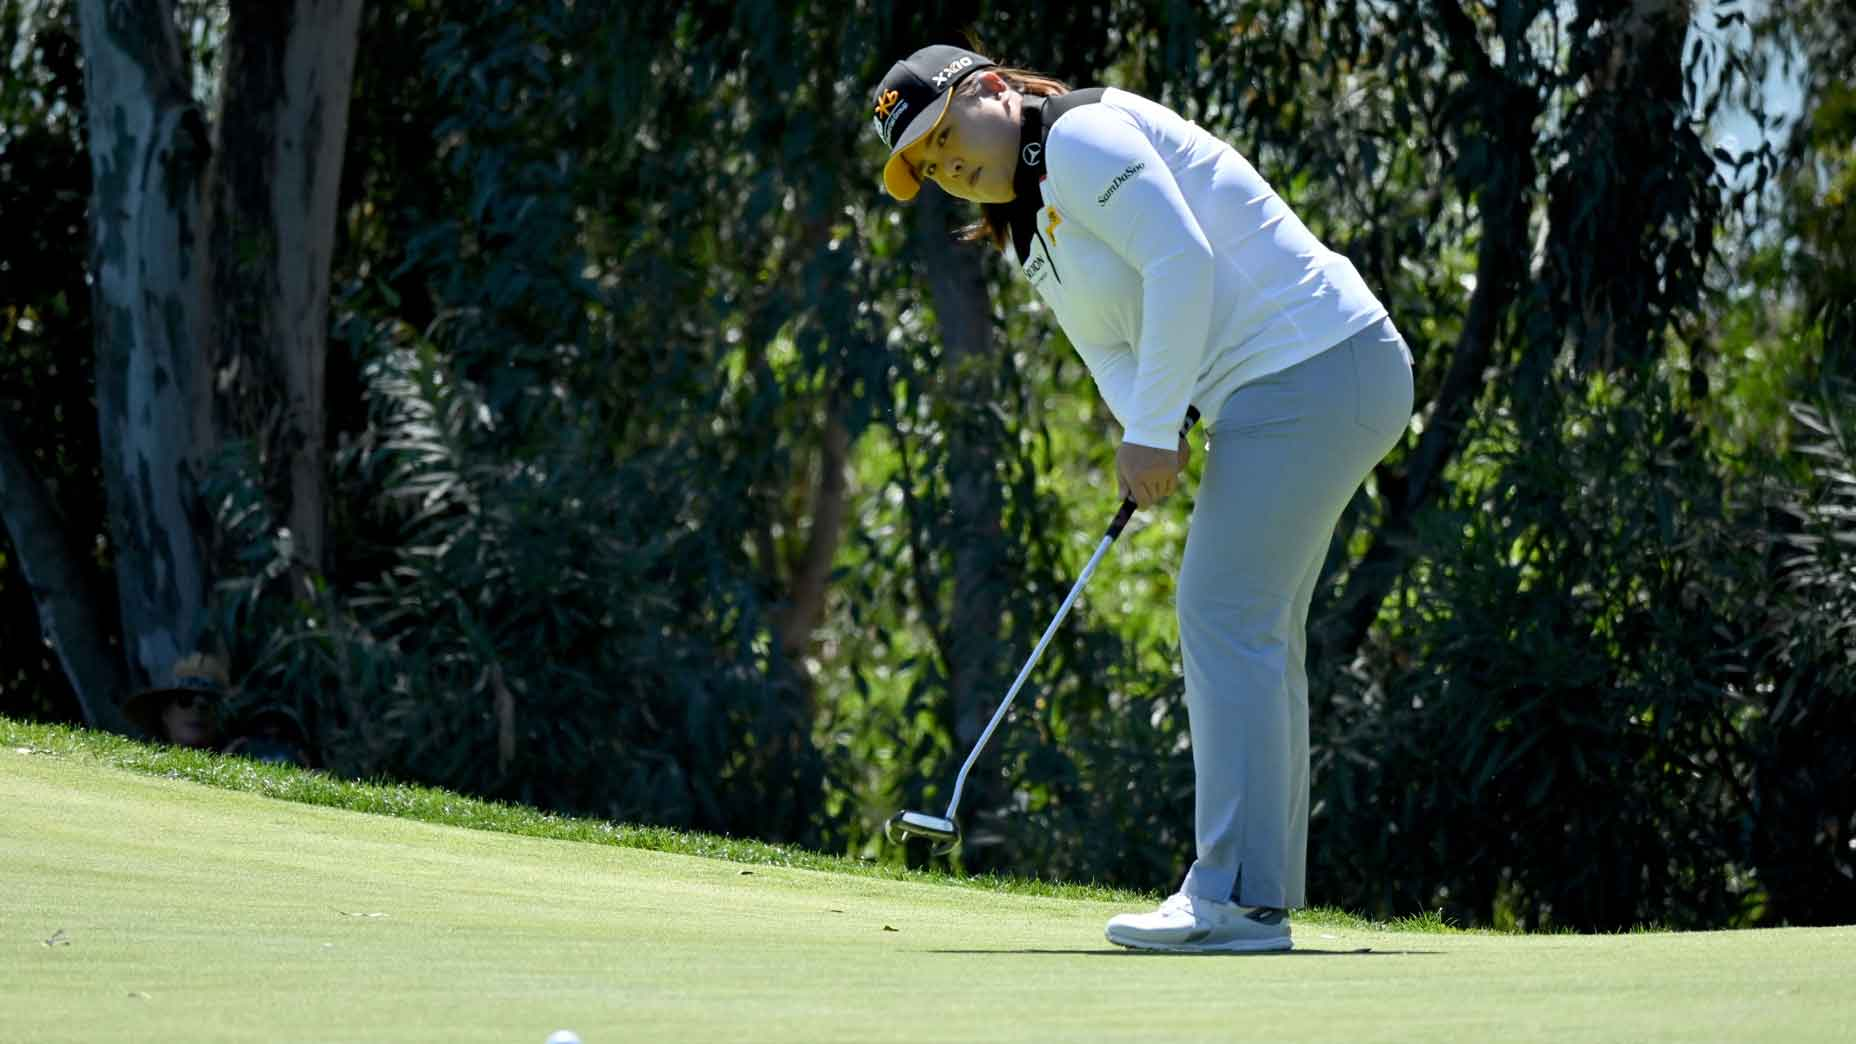 Inbee Park on the putting green